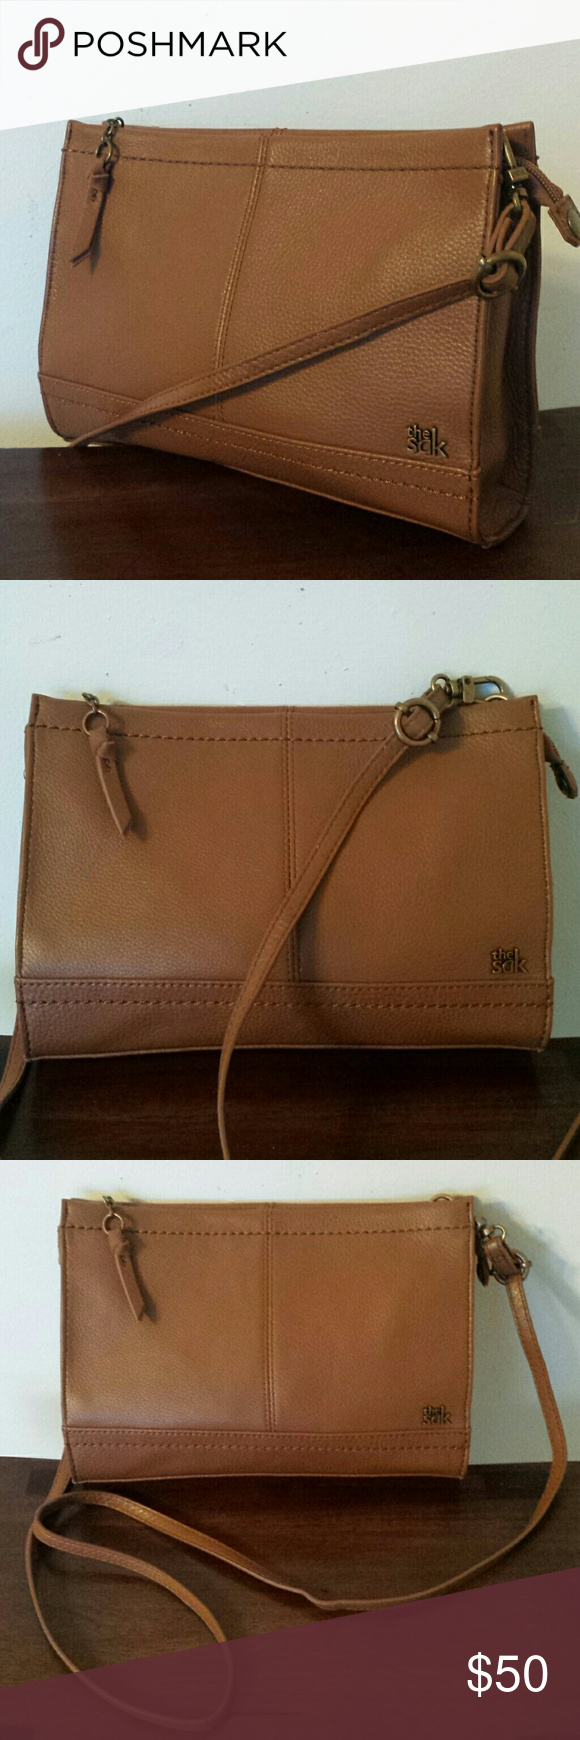 """NEW SOFT LEATHER CROSSBODY Perfect with any outfit is this The Sak butter soft leather crossbody. Adjustable strap cab be made much shorter. Interior has one large open section with zipper compartment and two open pockets. Zip closure and snap closure at side. This is new and still has plastic tag just not the price  Measures  10"""" length 7"""" hight 2 1/2""""Depth Strap is adjustable The Sak Bags Crossbody Bags"""